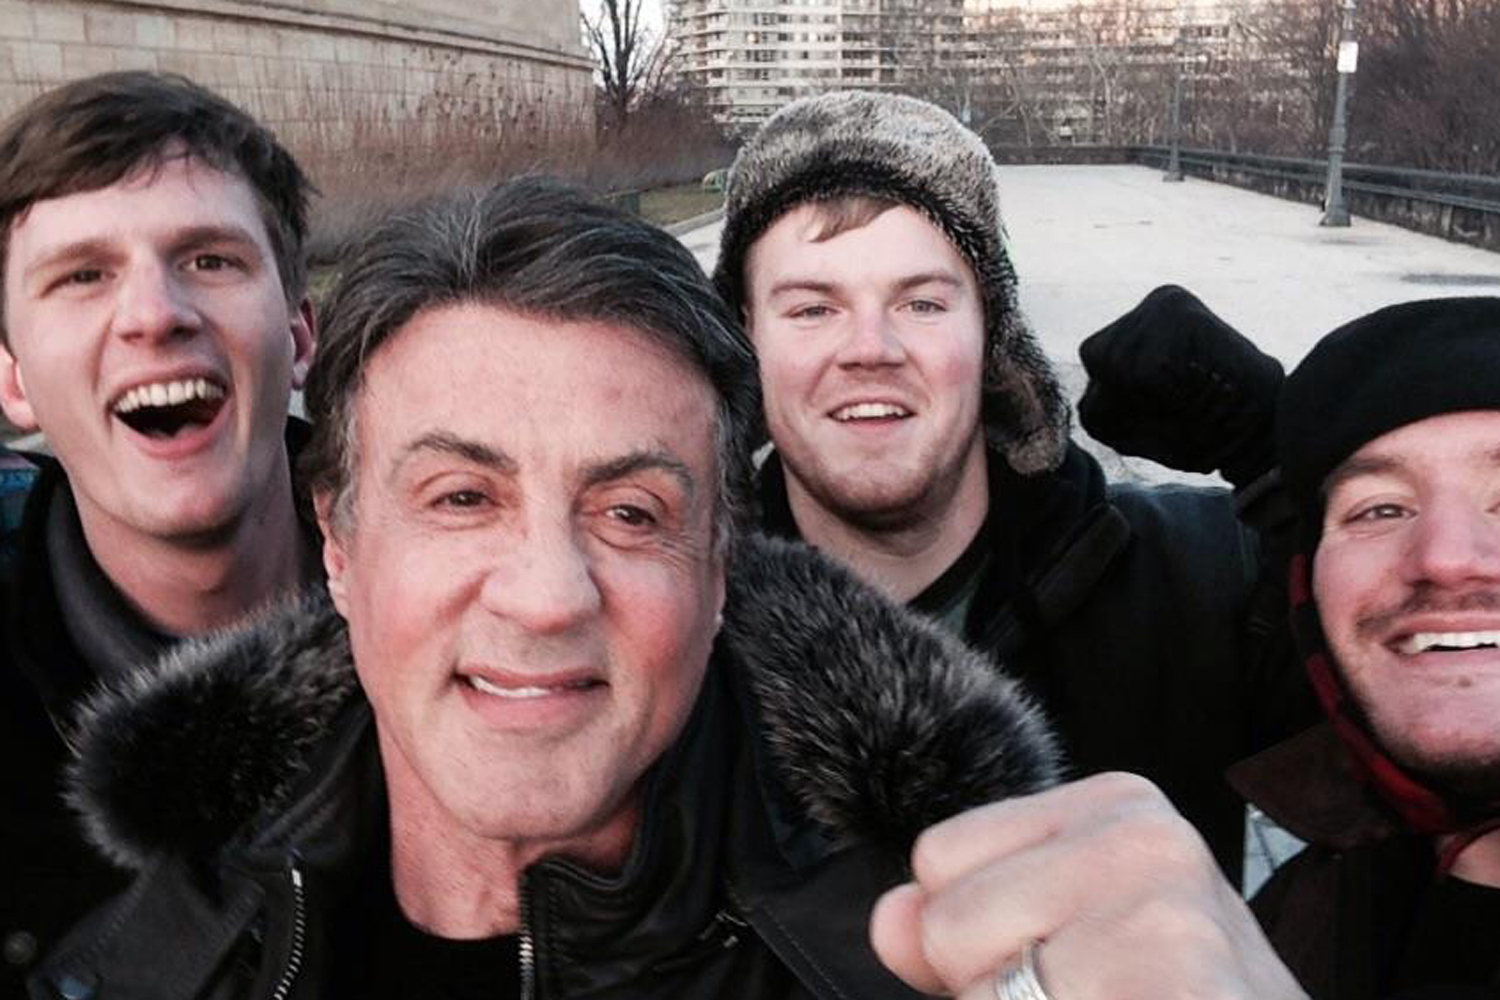 In this Jan. 17, 2015, photo provided by Peter Rowe, Rowe, right, takes a selfie with friends Jacob Kerstan, left, Andrew Wright, third from left and actor Sylvester Stallone in Philadelphia.